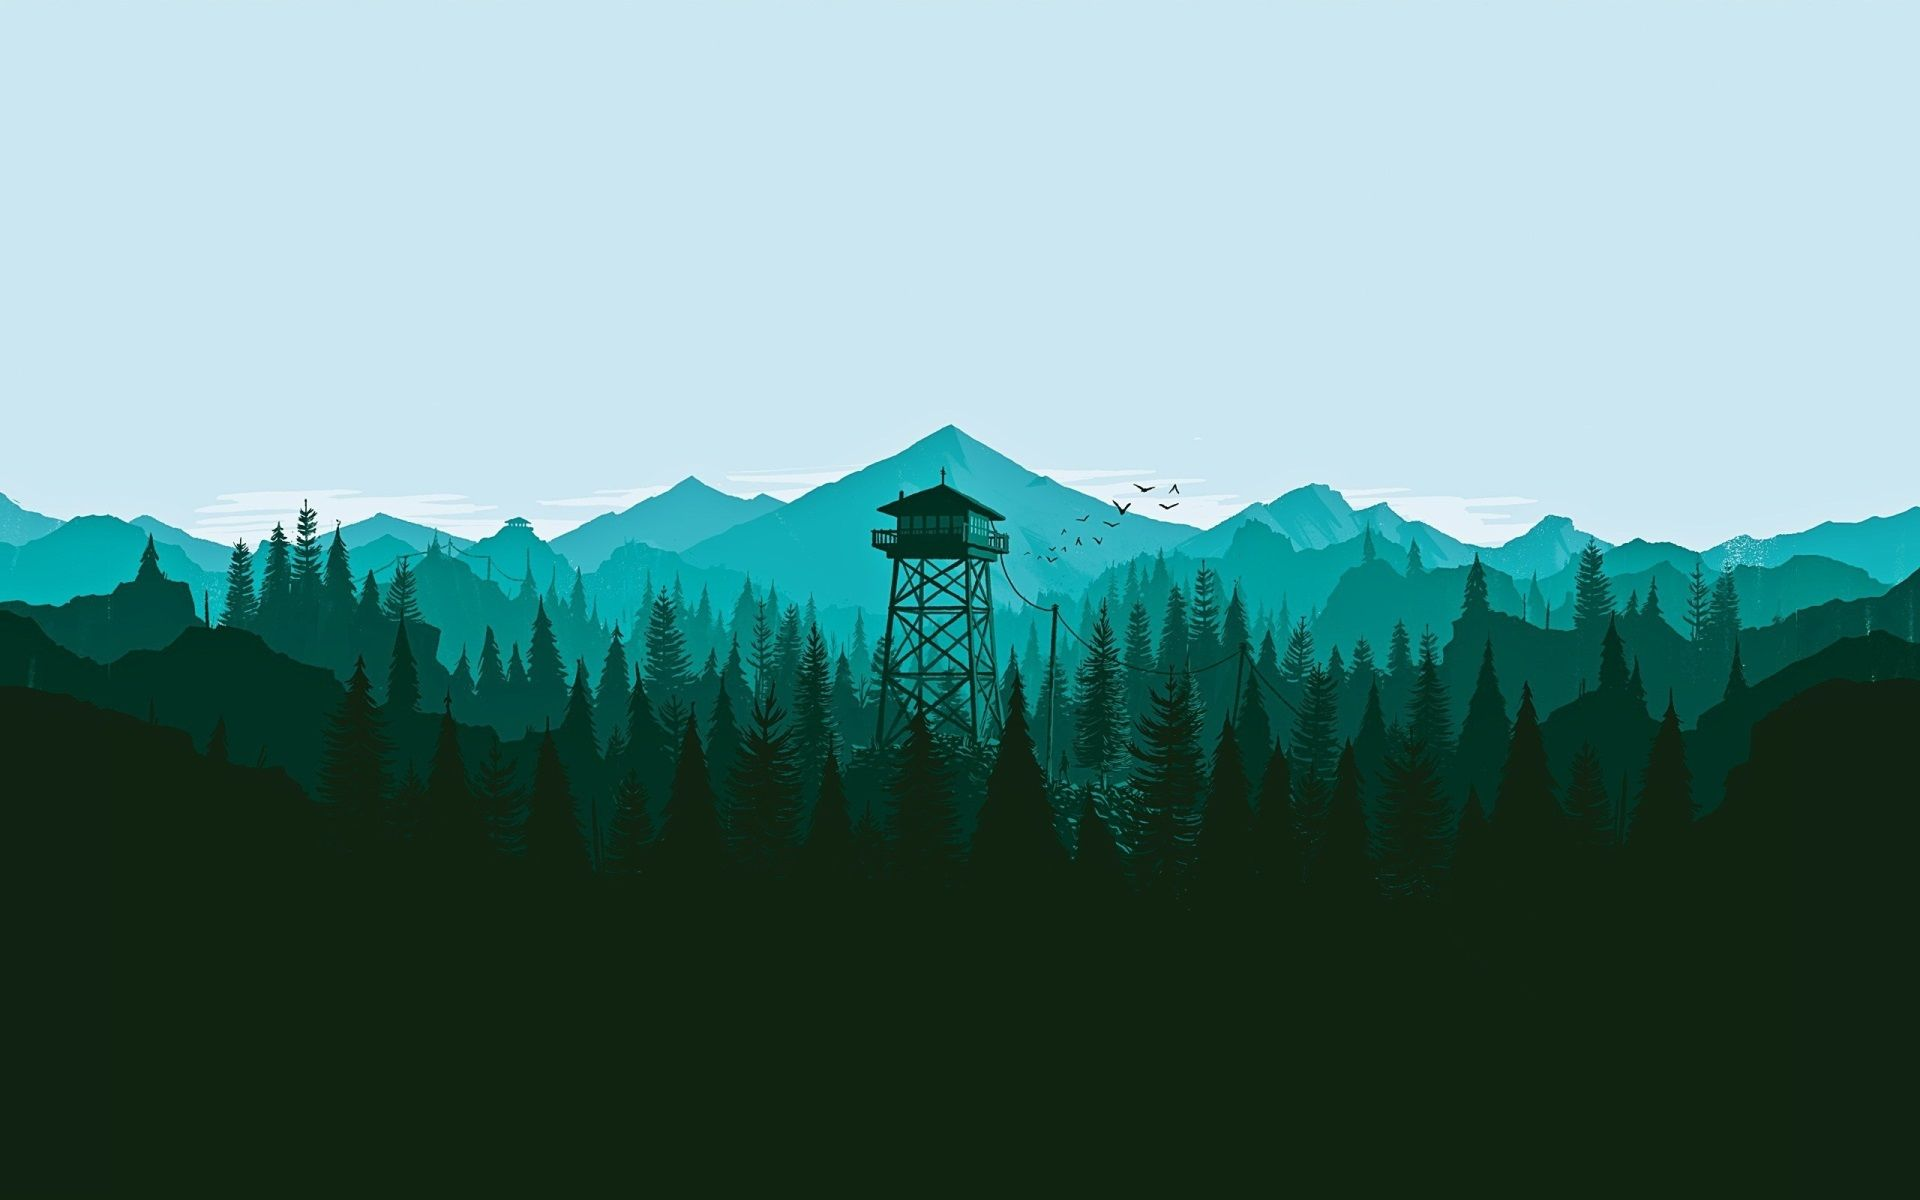 1920x1200 Firewatch Desktop Wallpaper High Resolution Free